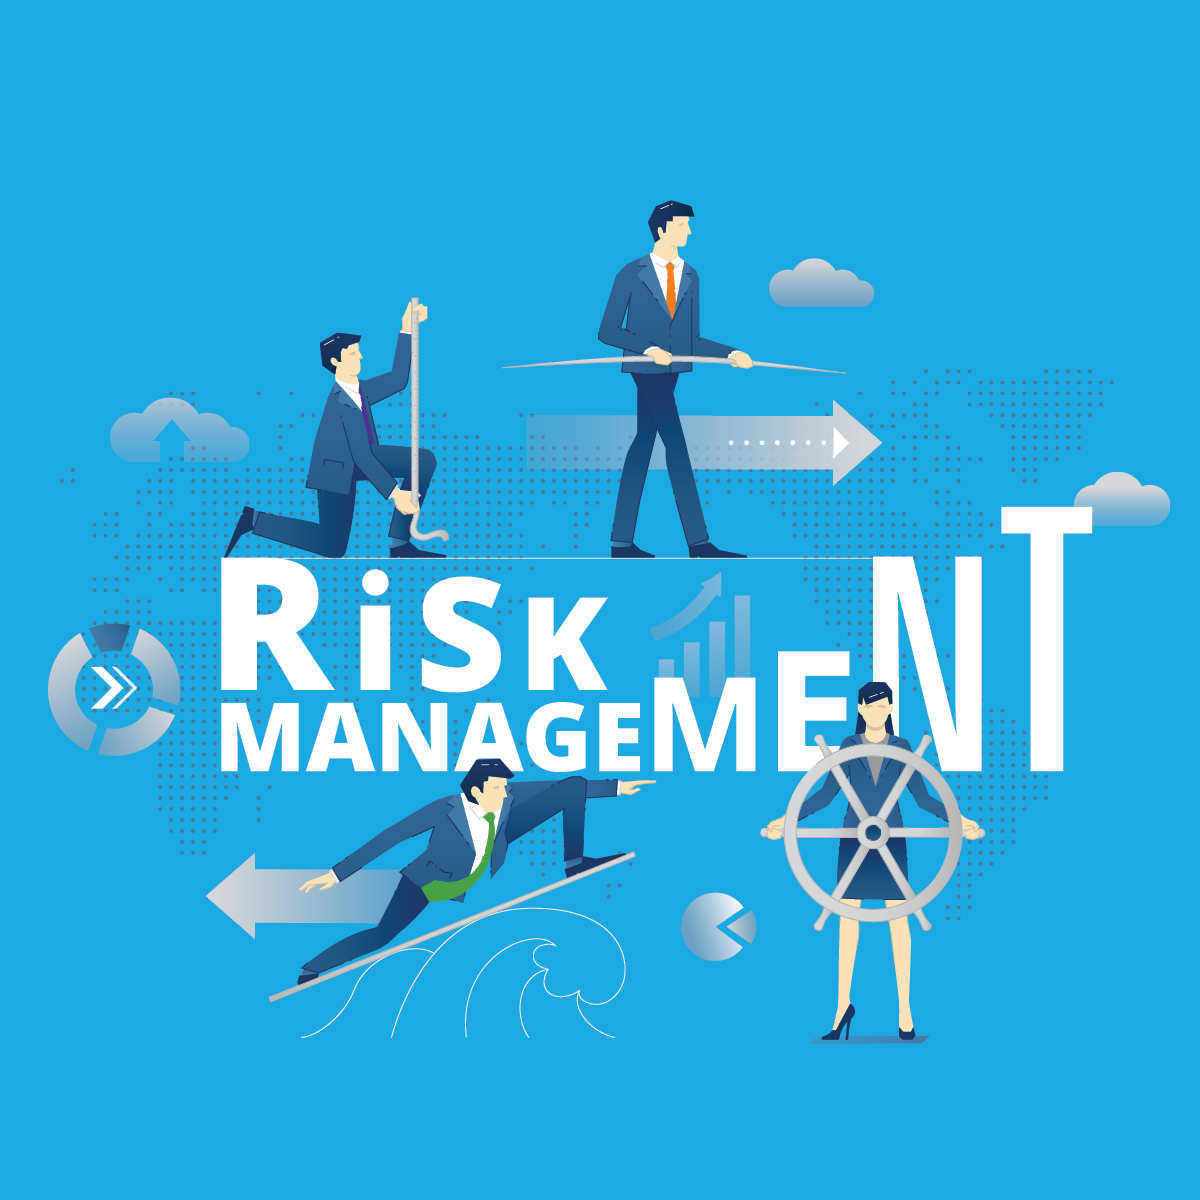 Risk Management Main Image